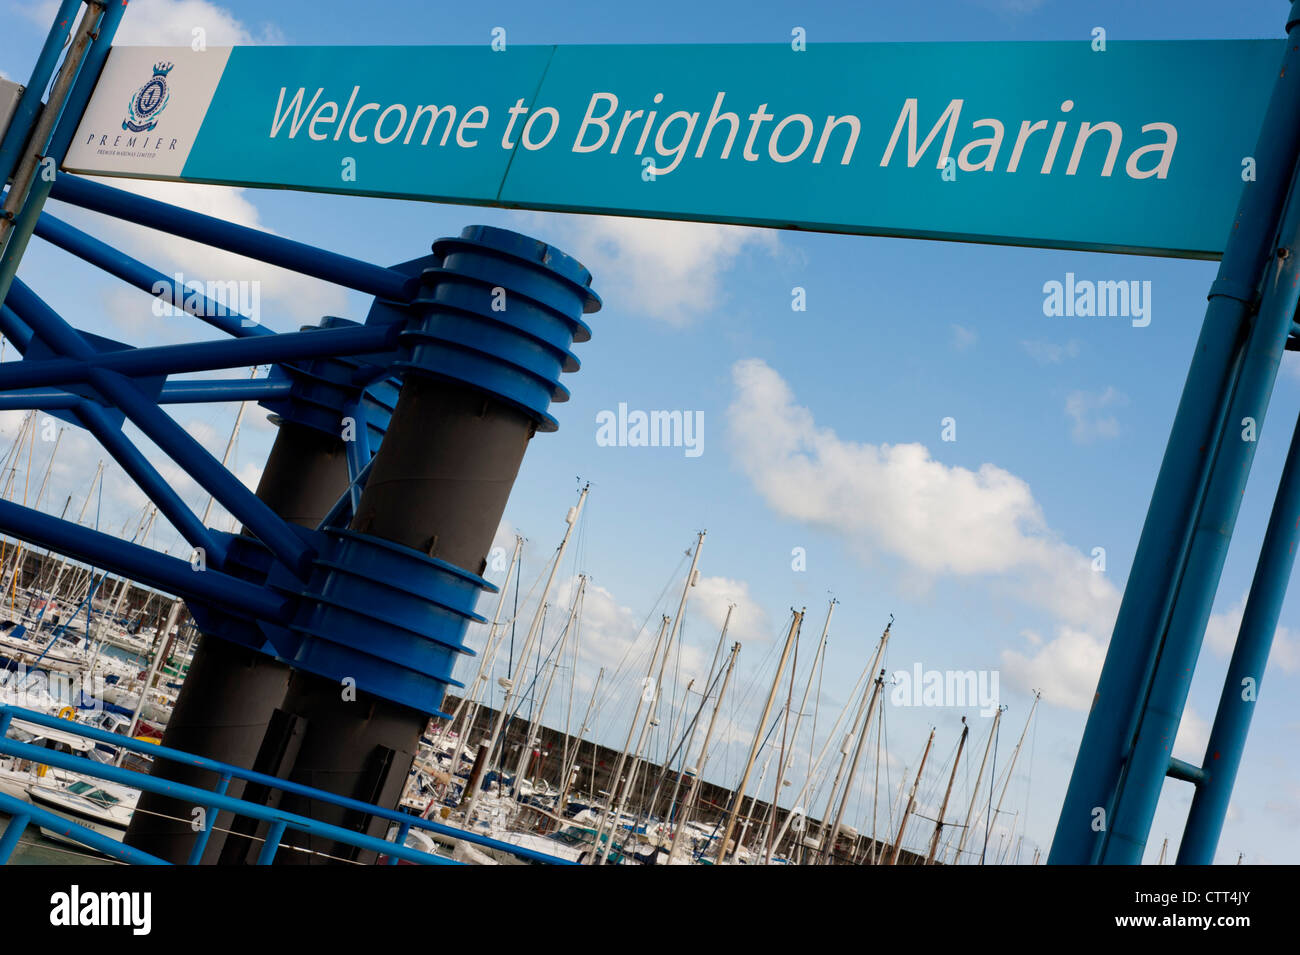 Welcome to Brighton Marina Sign - Stock Image